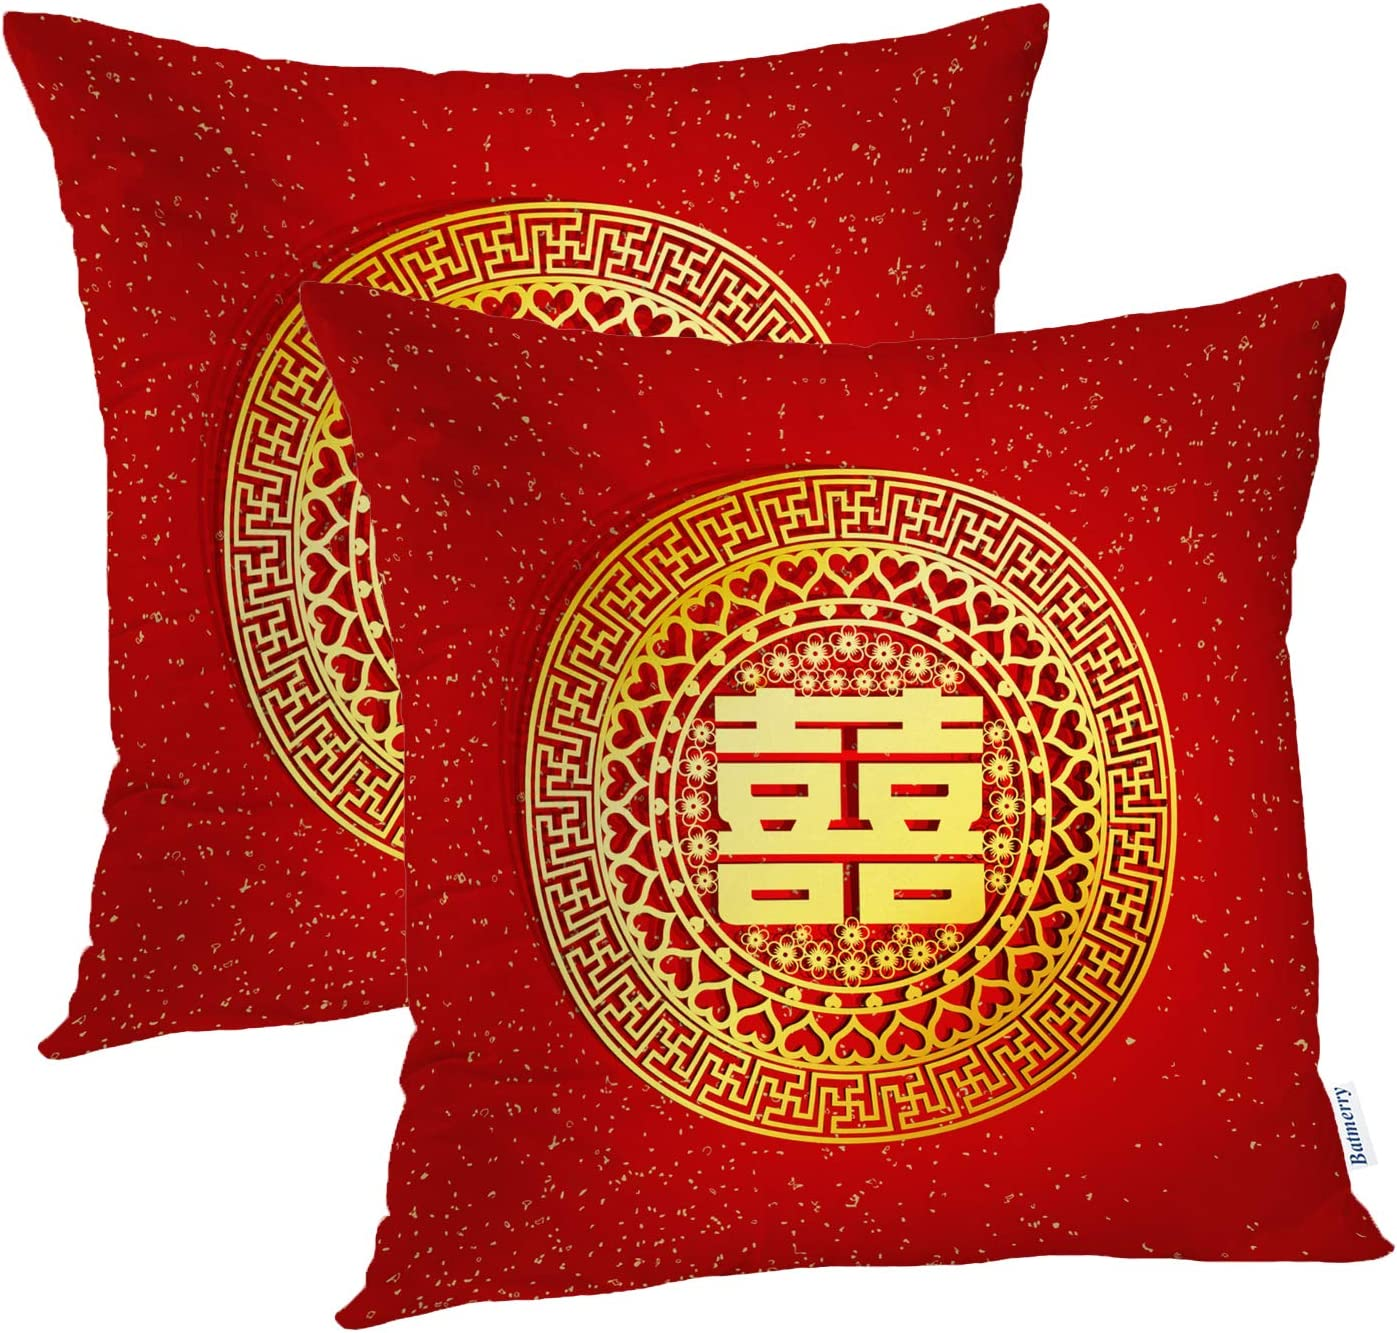 Batmerry Love Pillow Decorative Throw Pillow Covers 18x18 Inch Set of 2, White Double Happiness Pattern Red Chinese Wedding Double Sided Square Pillow Cases Pillowcase Sofa Cushion